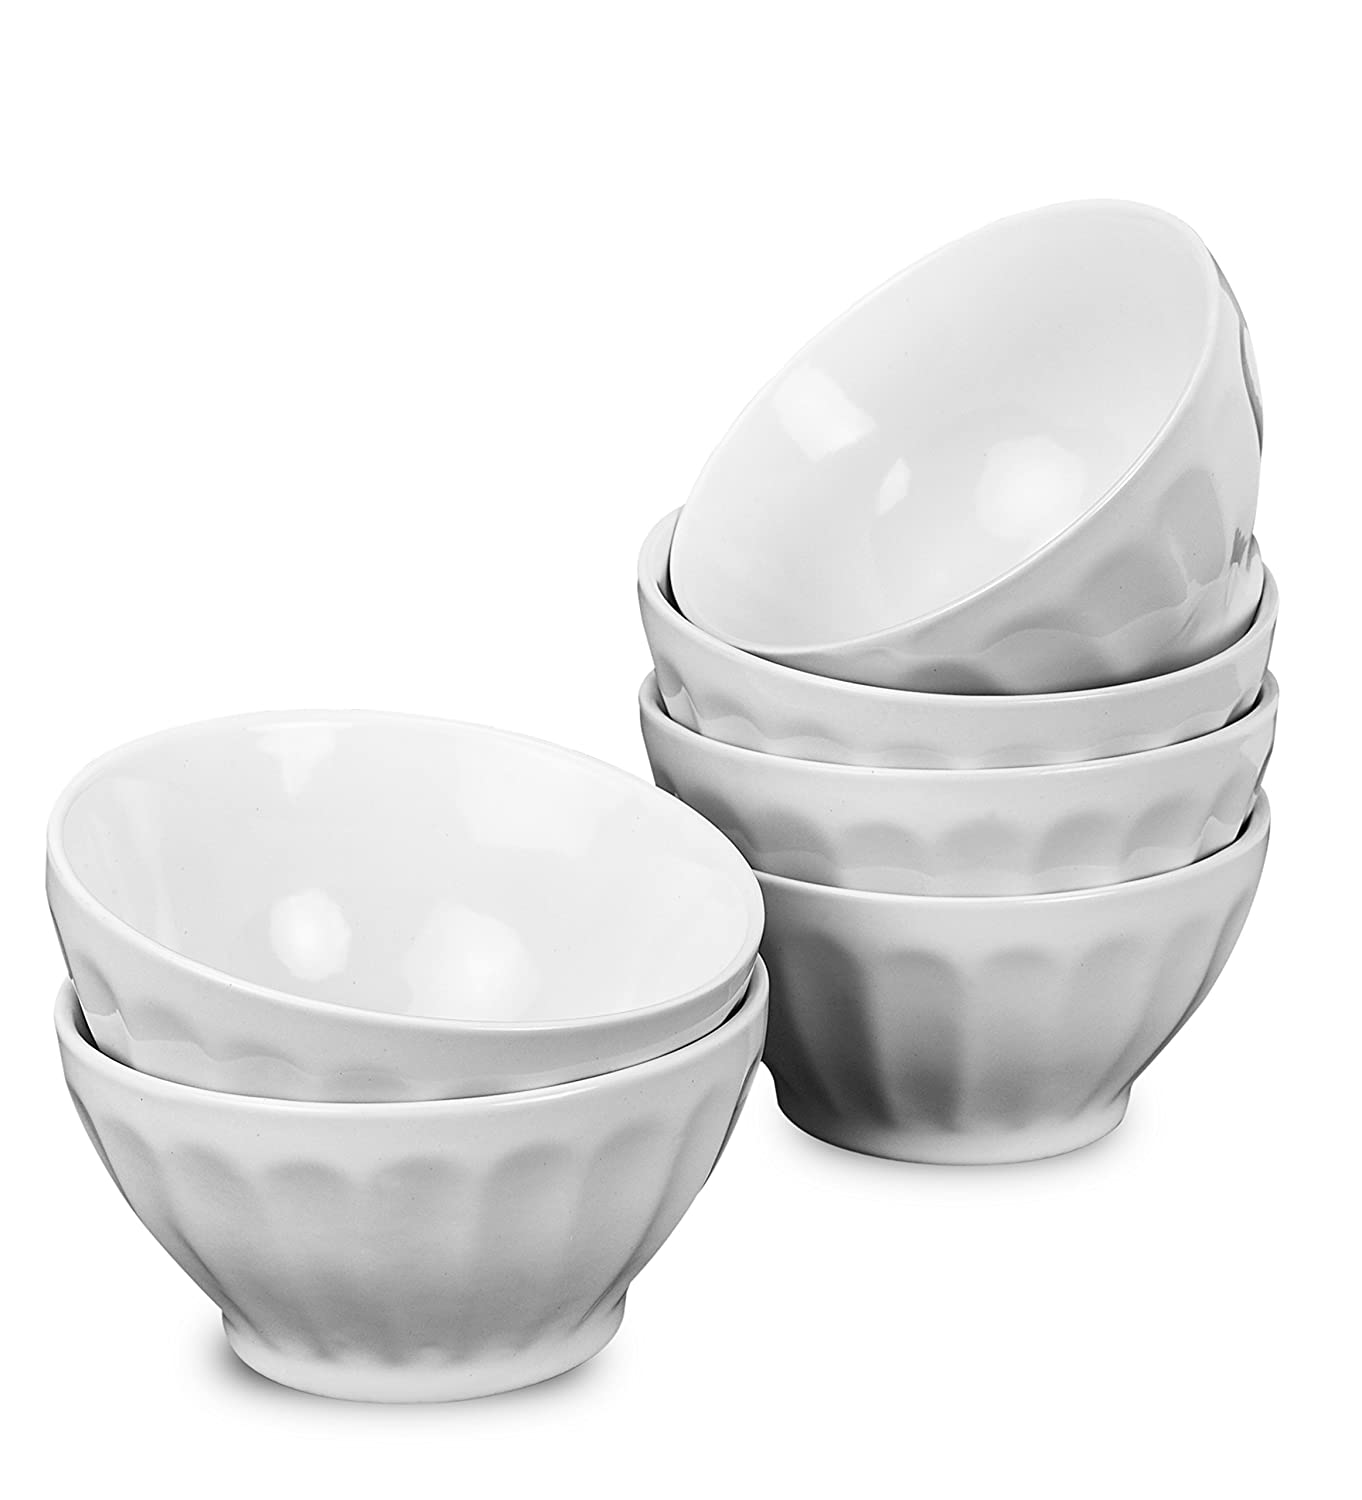 Klikel 6 Pack 18oz White Fluted Soup Bowls | Dishwasher And Microwave Safe Porcelain Dinnerware Set | Large Bowl For Noodle Pasta Cereal Salad | 18oz - 5.5 Round